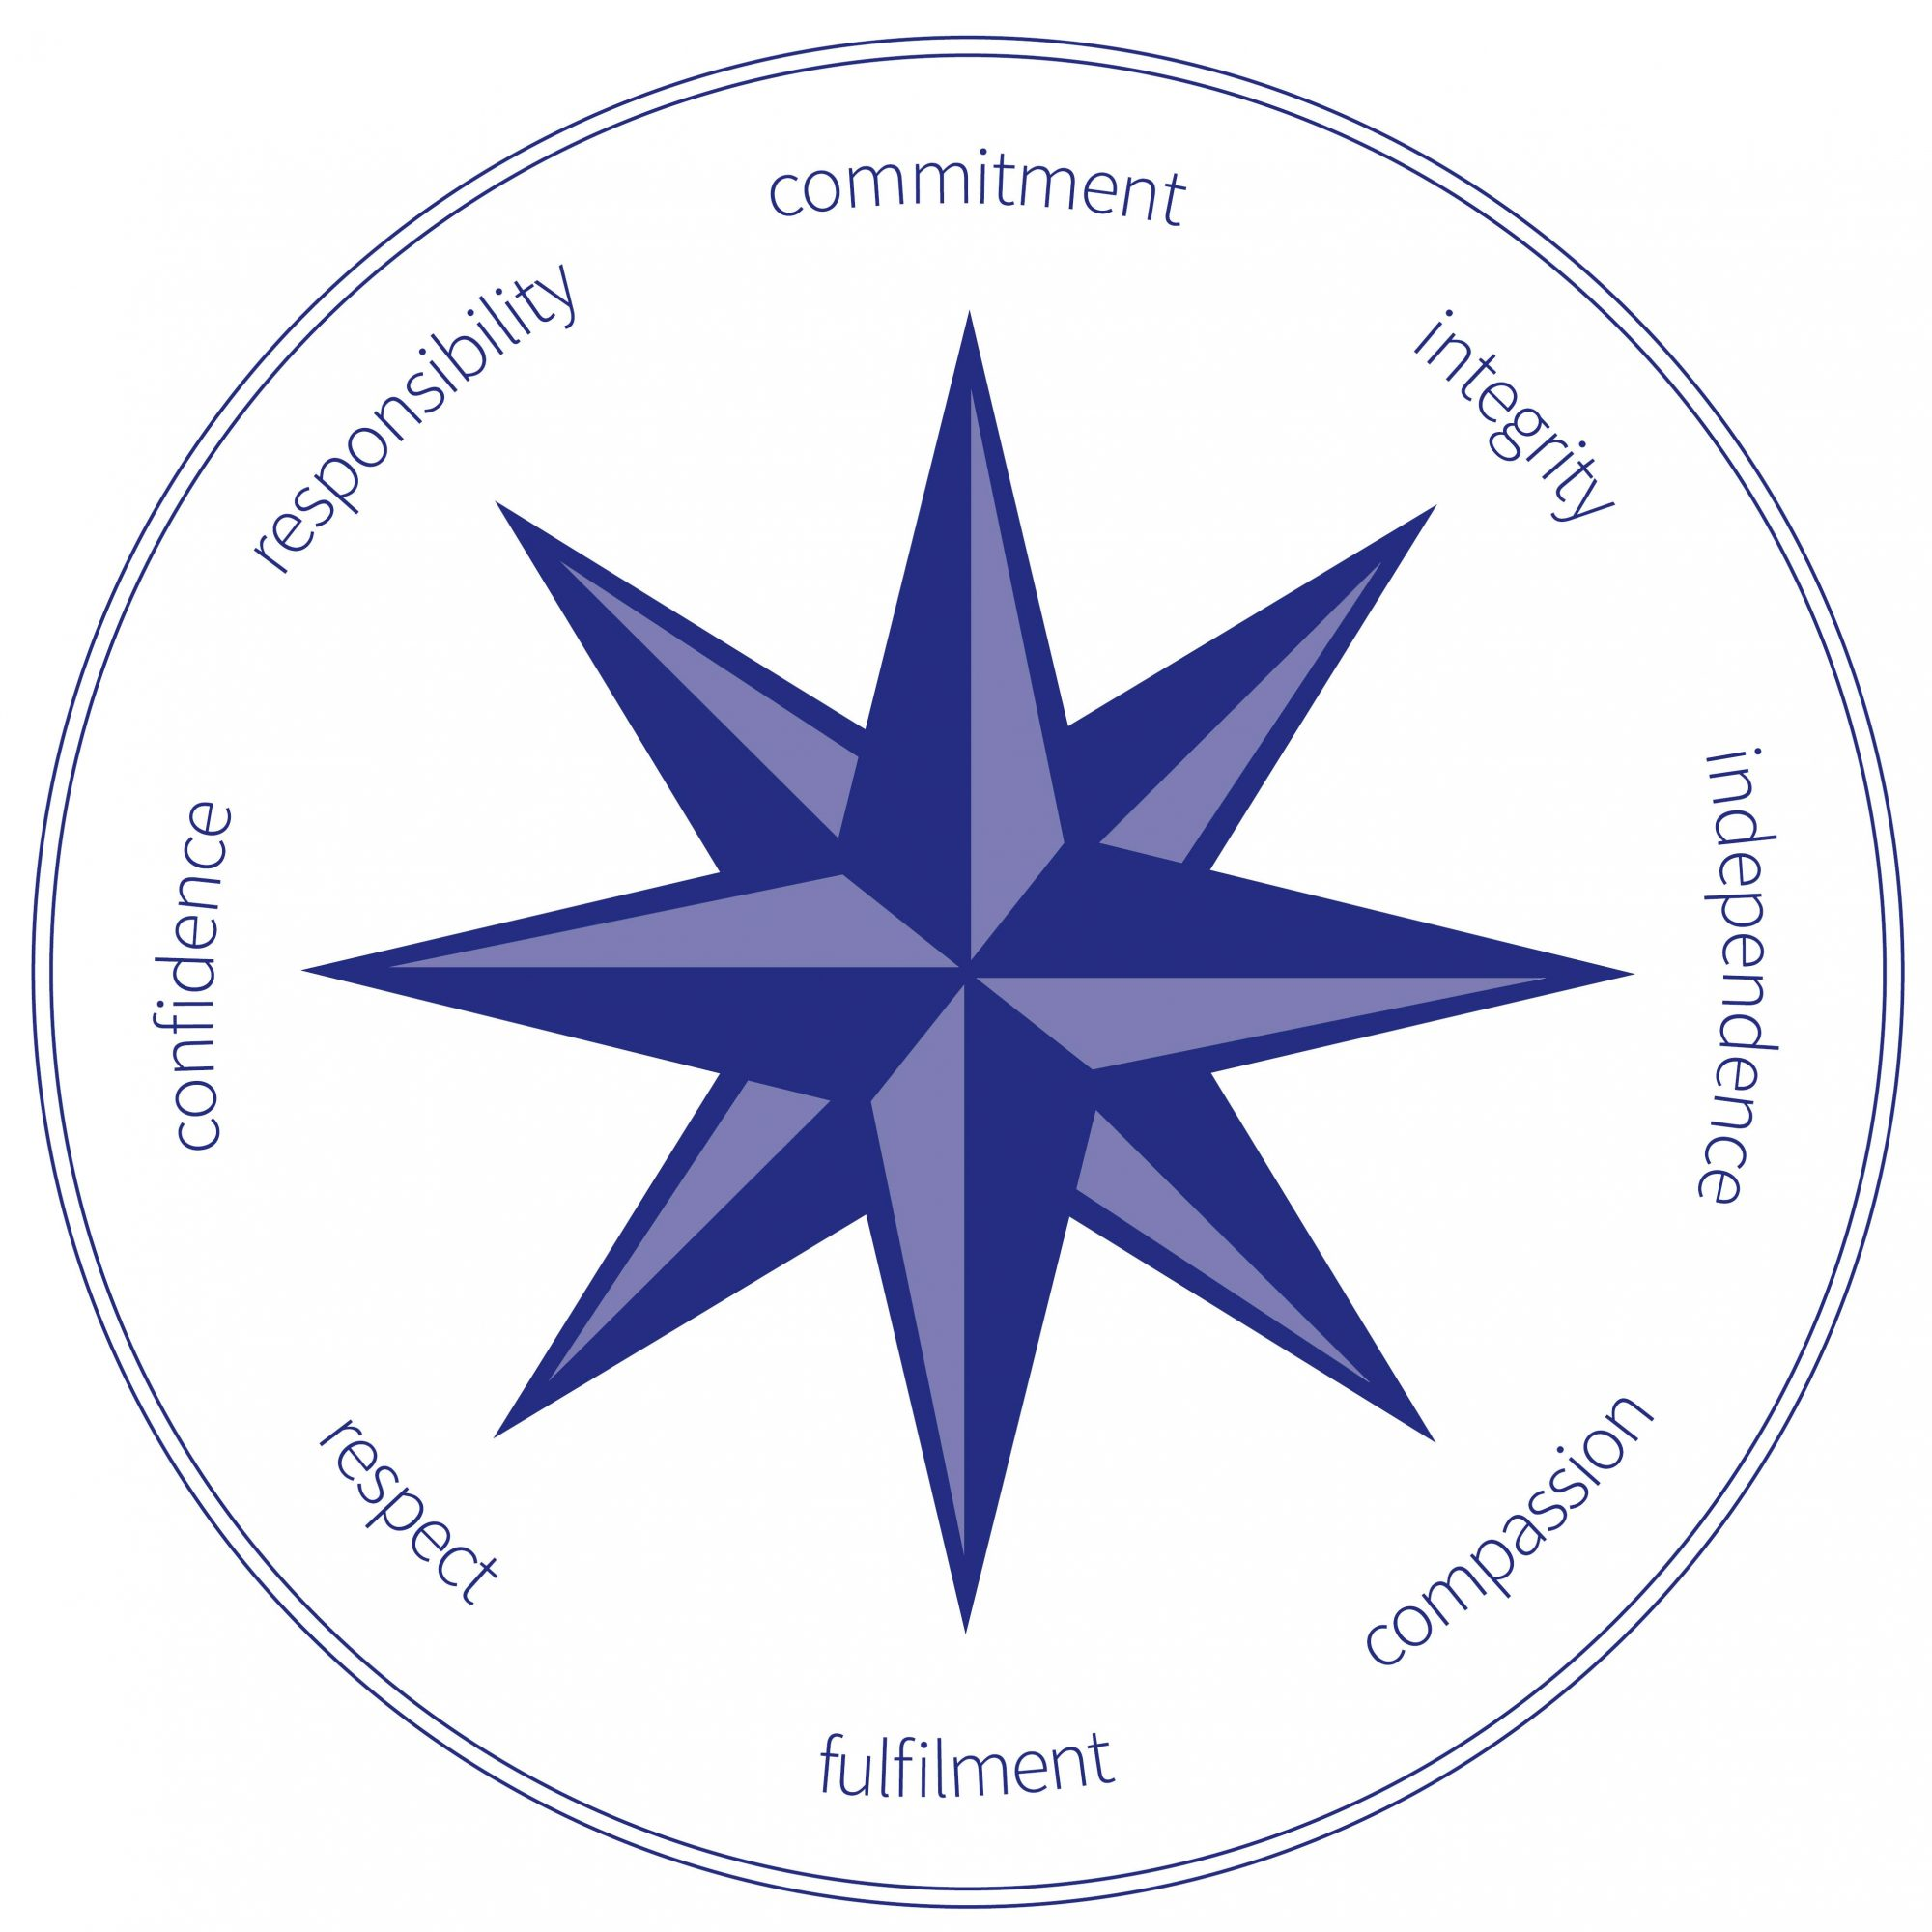 Tintern values compass